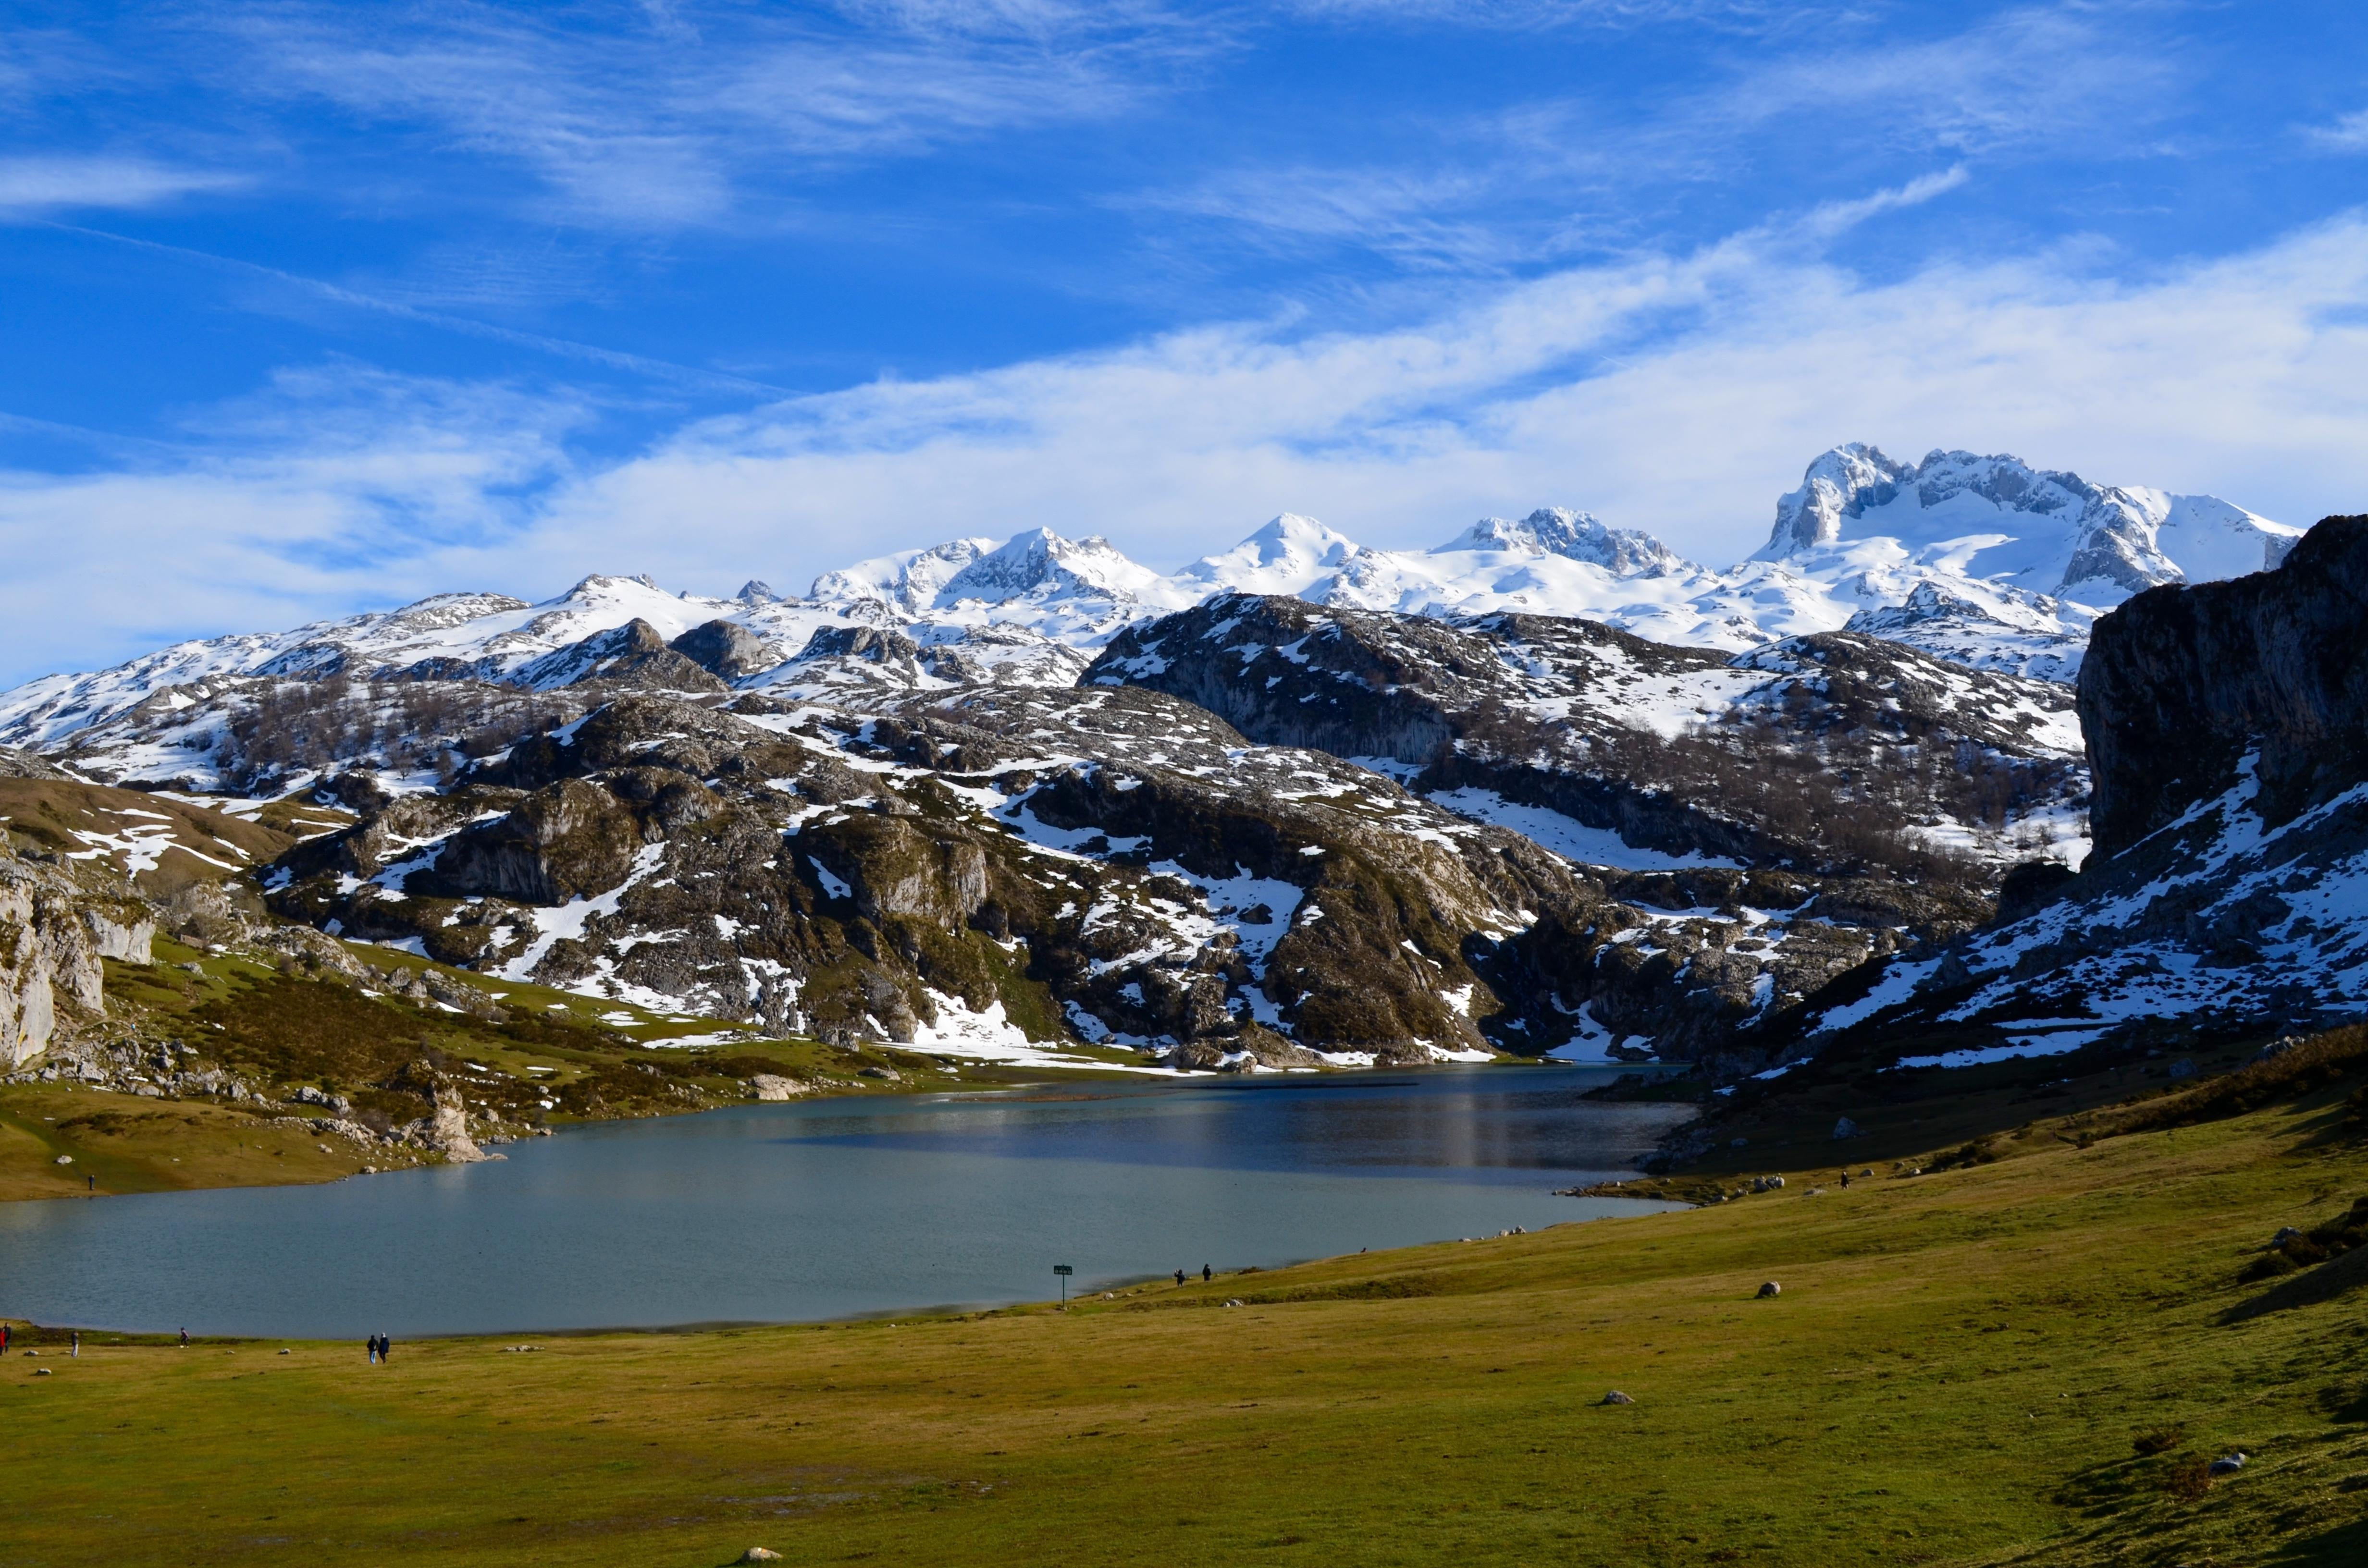 Park in The Lakes of Covadonga - Enol and Ercina lakes